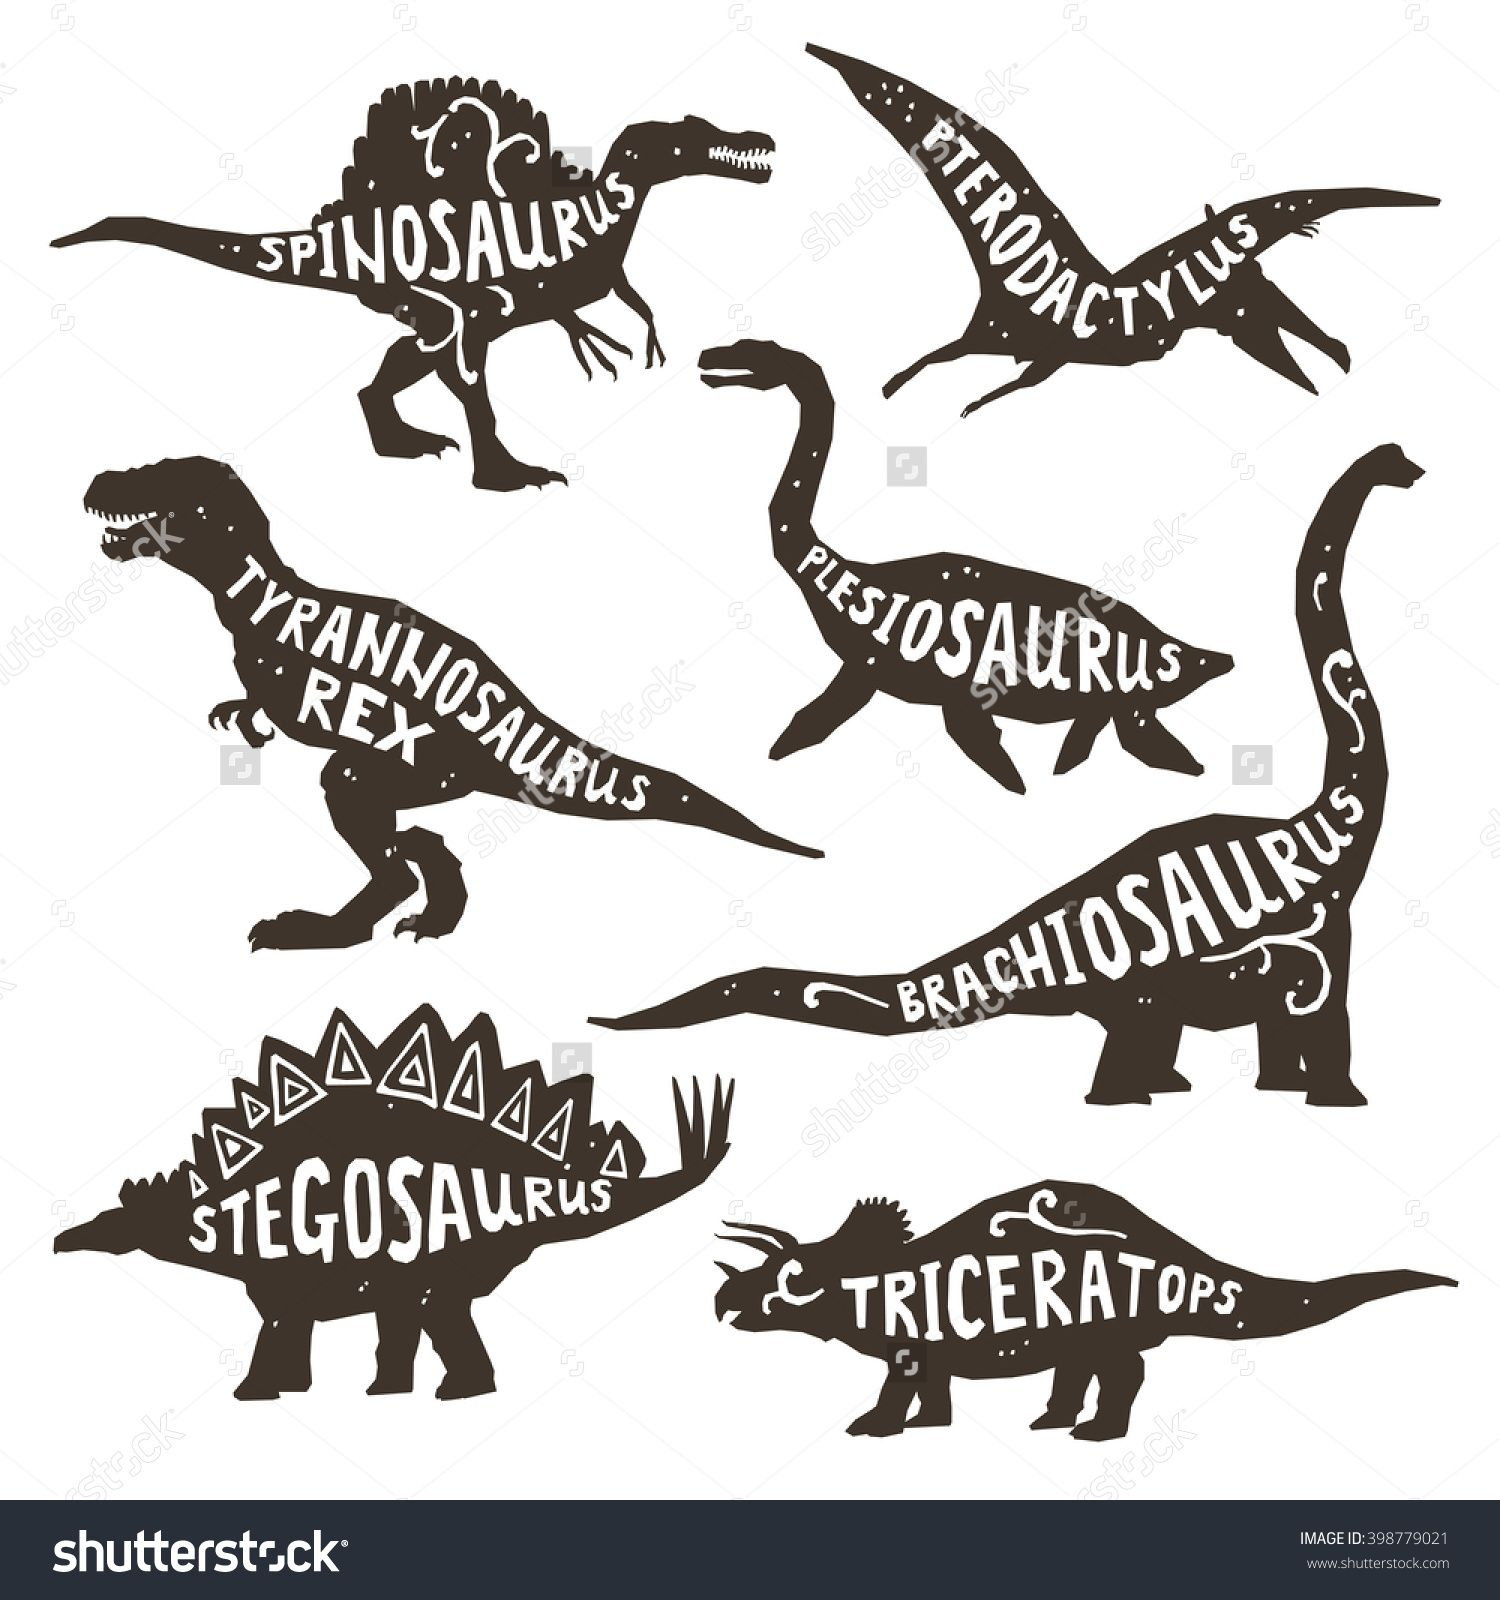 dinosaurs black silhouettes set with lettering pterodactyl